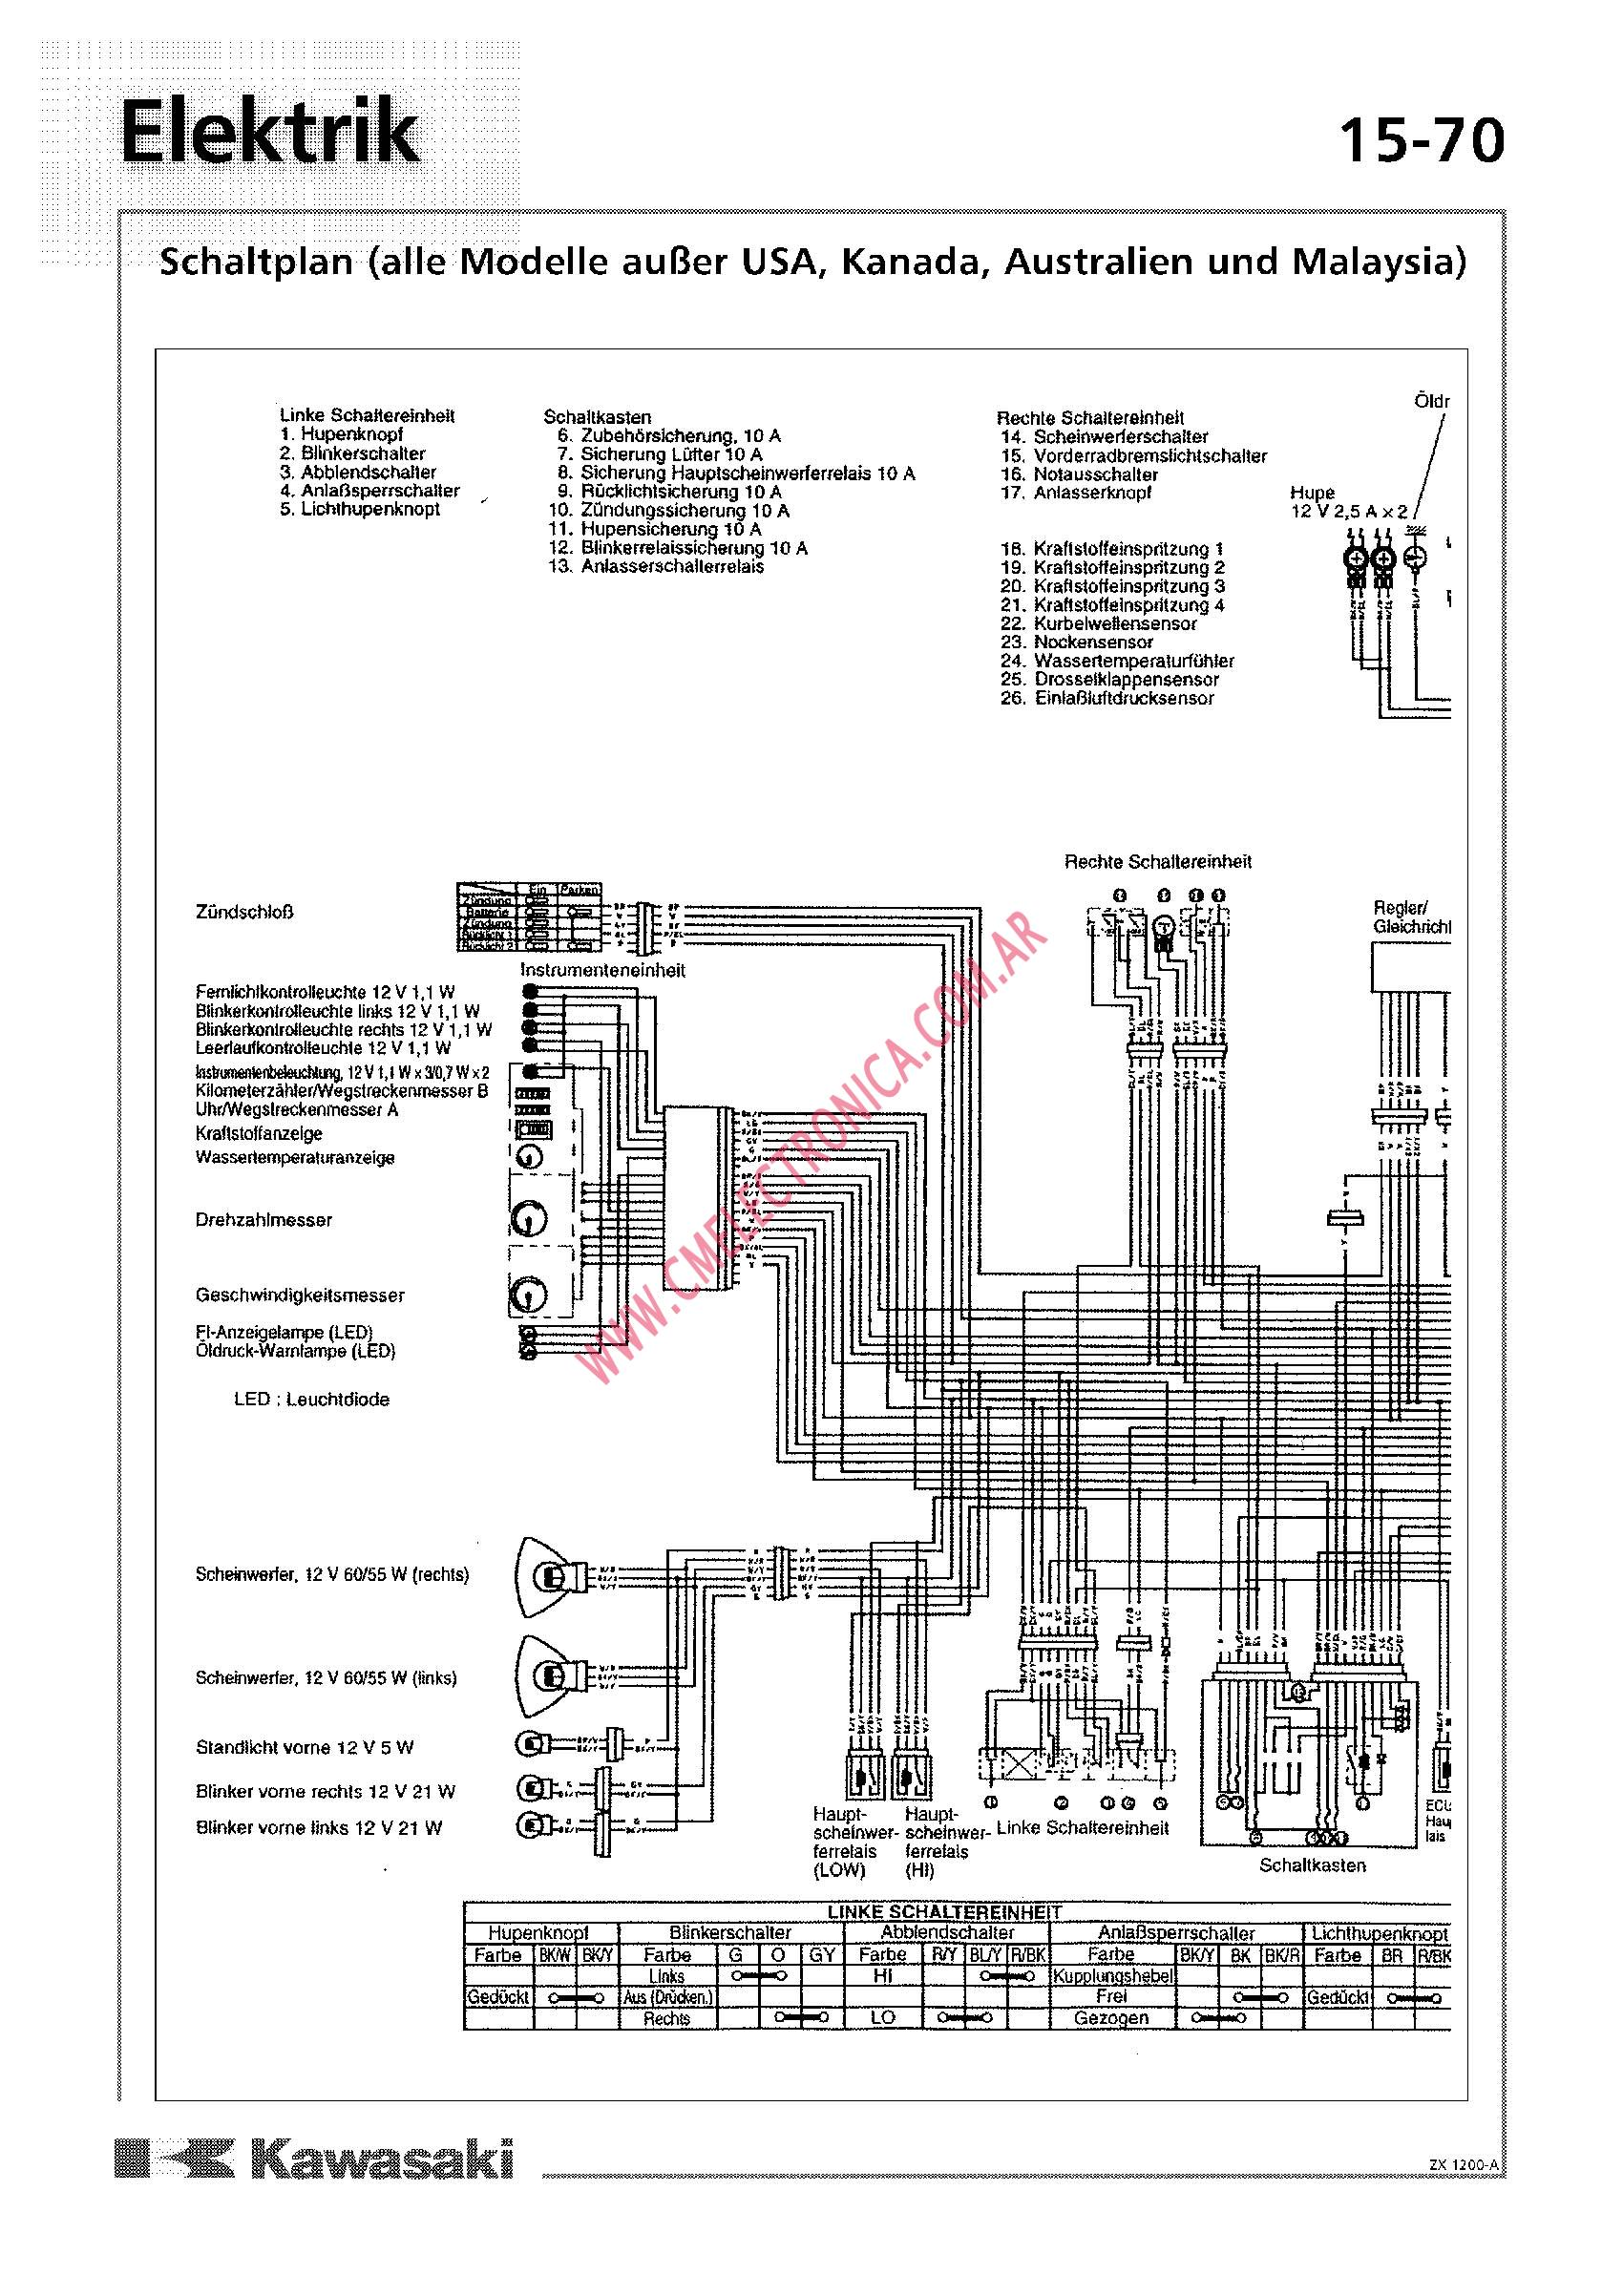 2003 Kawasaki Zx12 Wiring Diagram Library Z1000 Electrical Diagrama Zx12r Zx10r 2006 2016